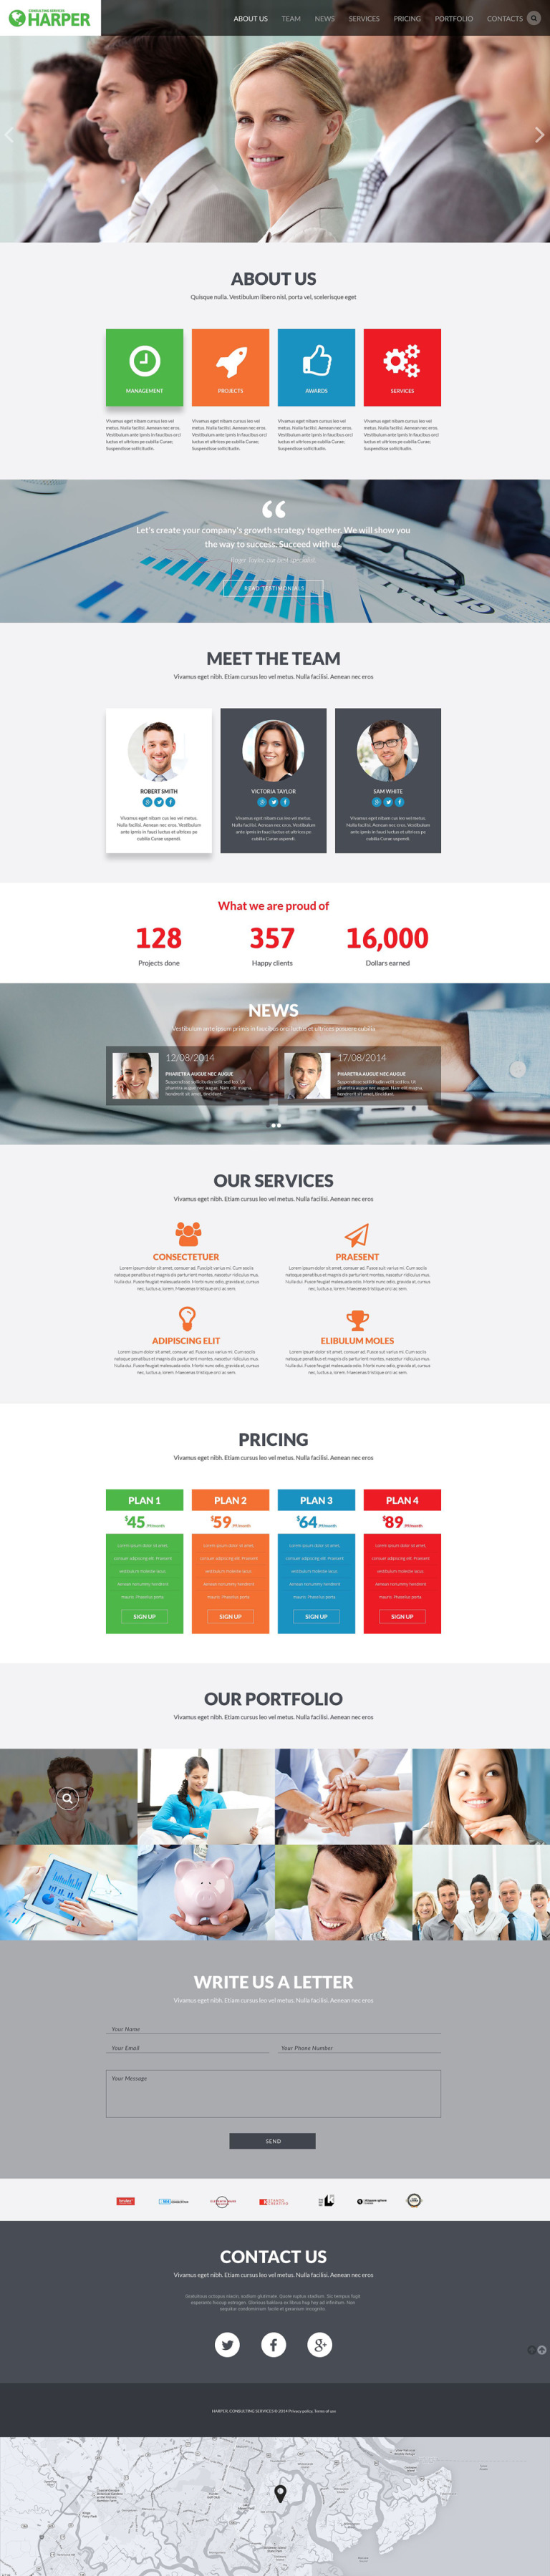 Business Consulting Agency Website Template New Screenshots BIG